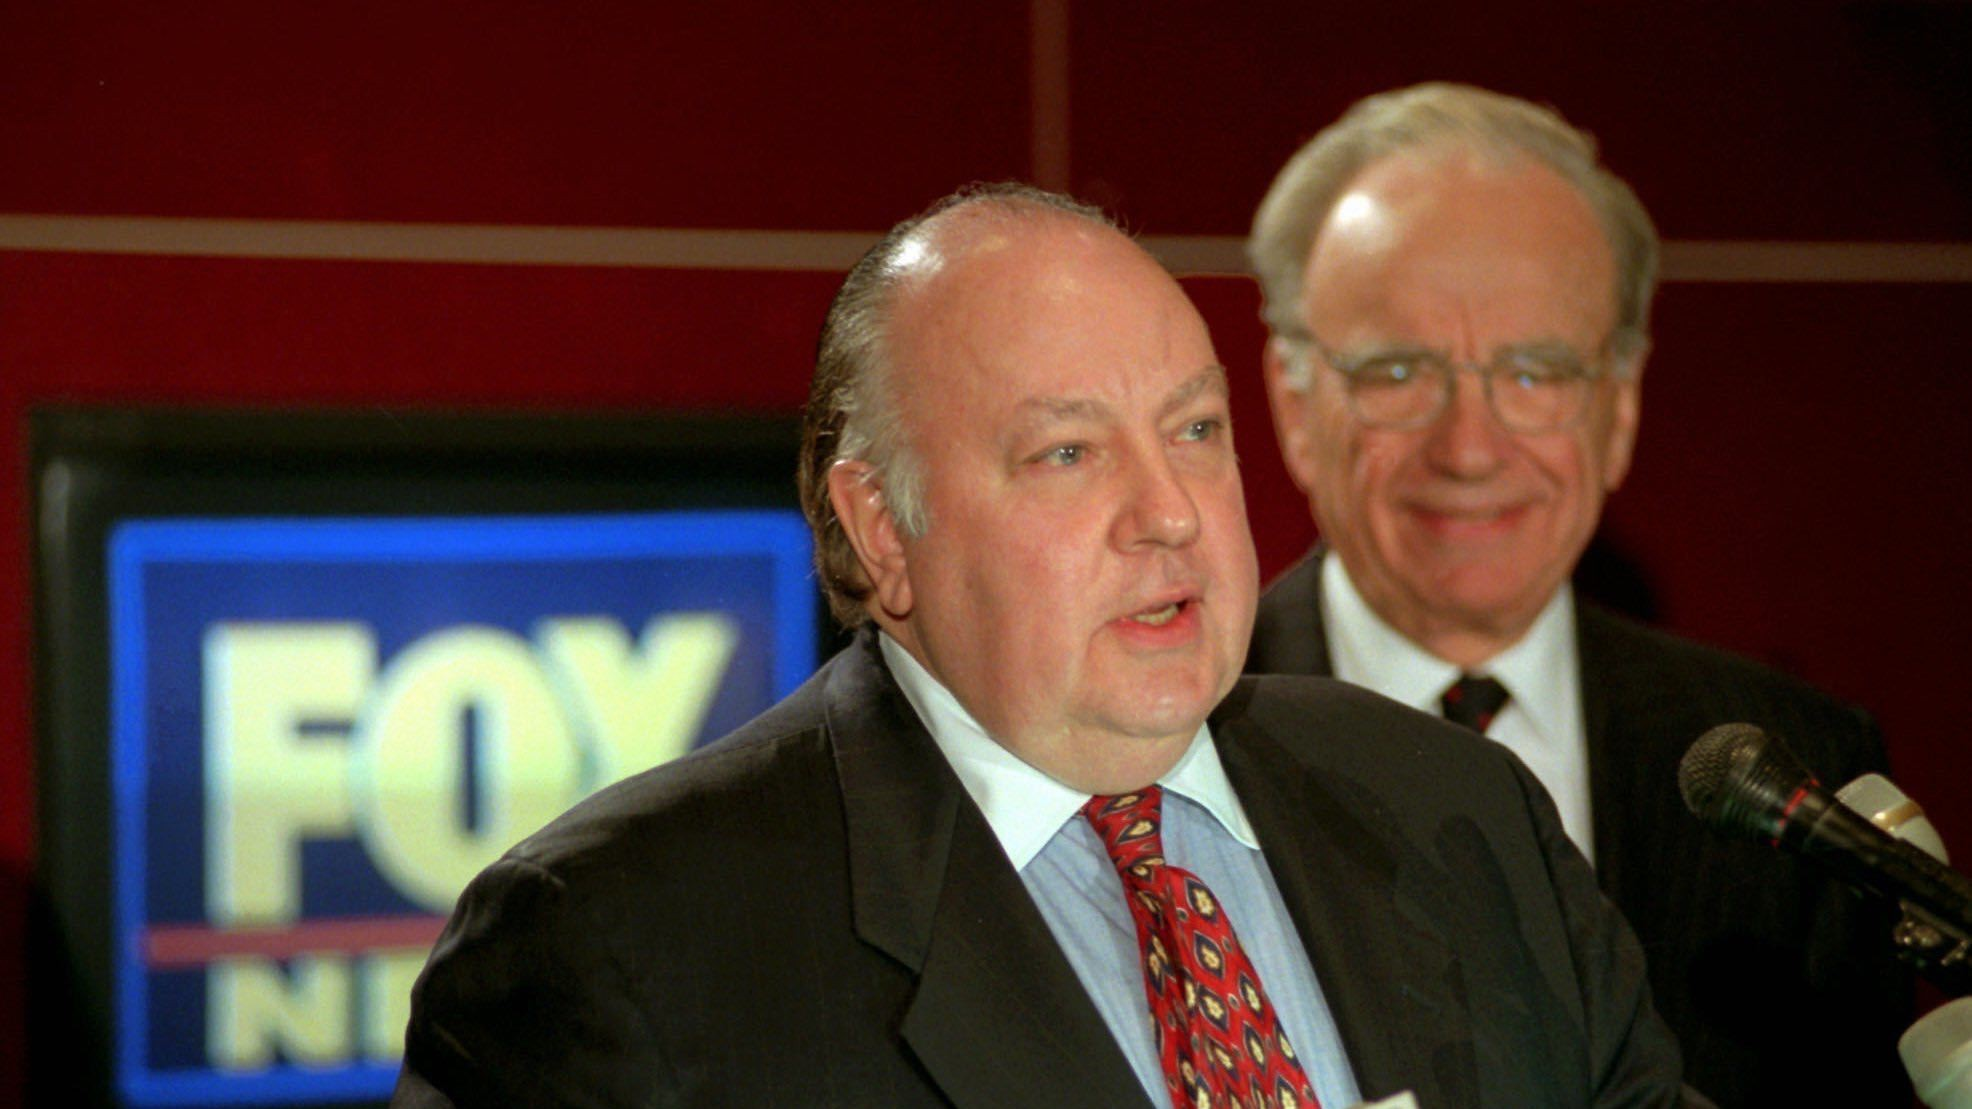 The post-Ailes era of Fox News is a lot like the old era